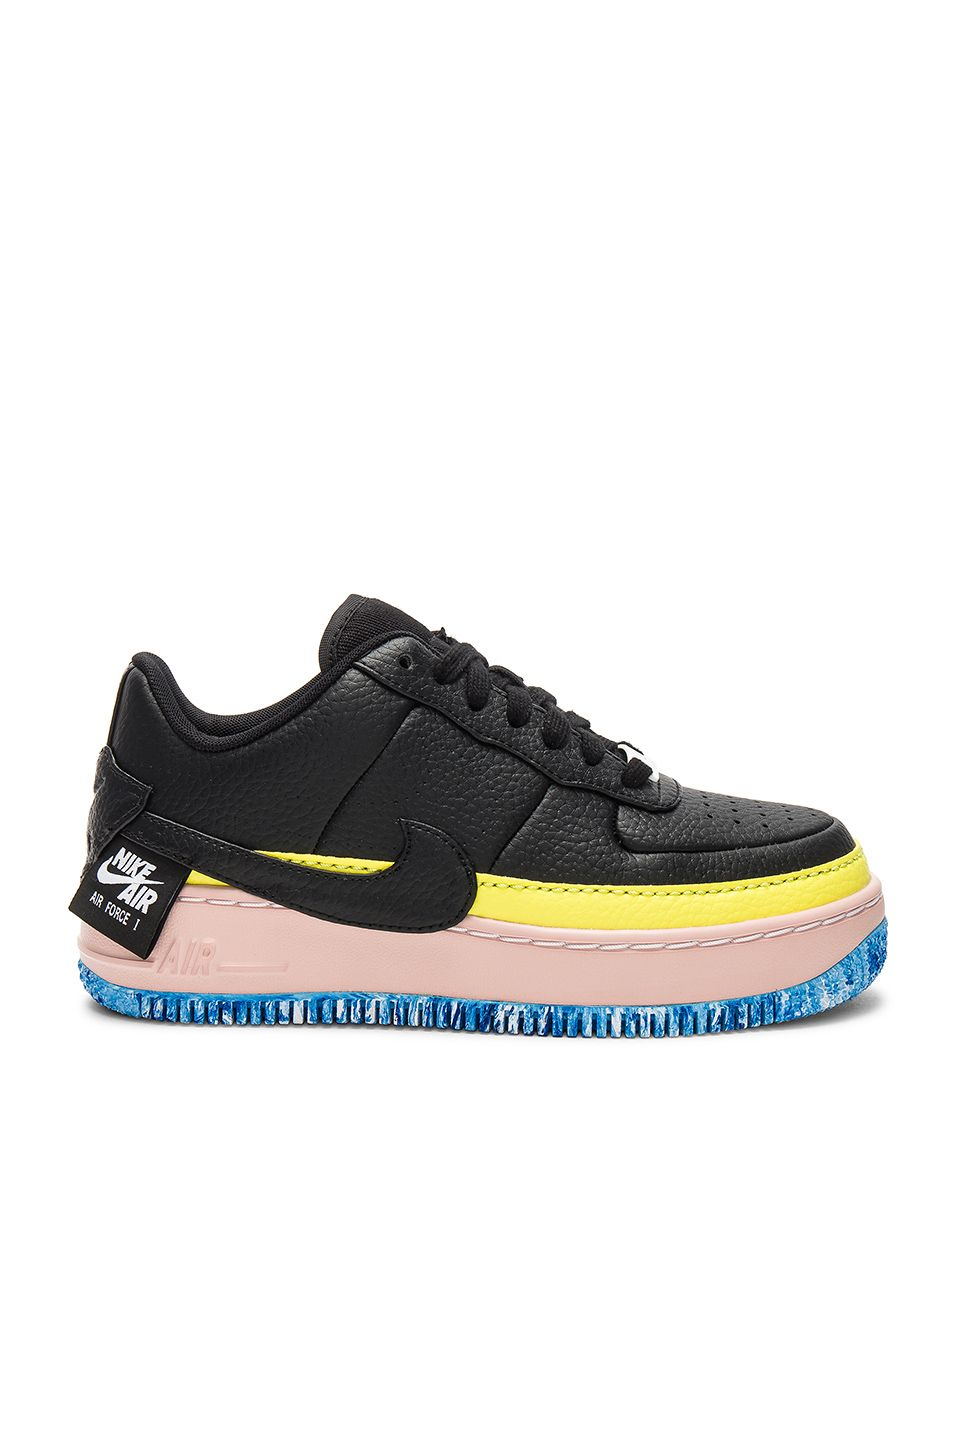 finest selection 94818 d1e6c Nike Women's AF1 Jester XX SE in Black, Sonic Yellow ...